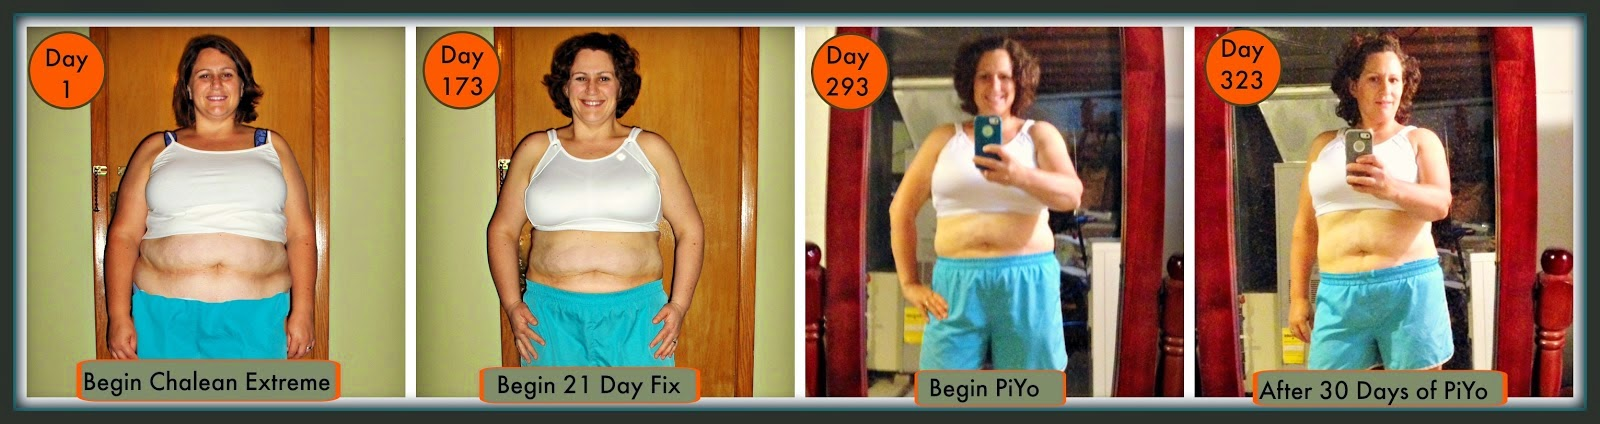 Can I be successful at being a beachbody coach?